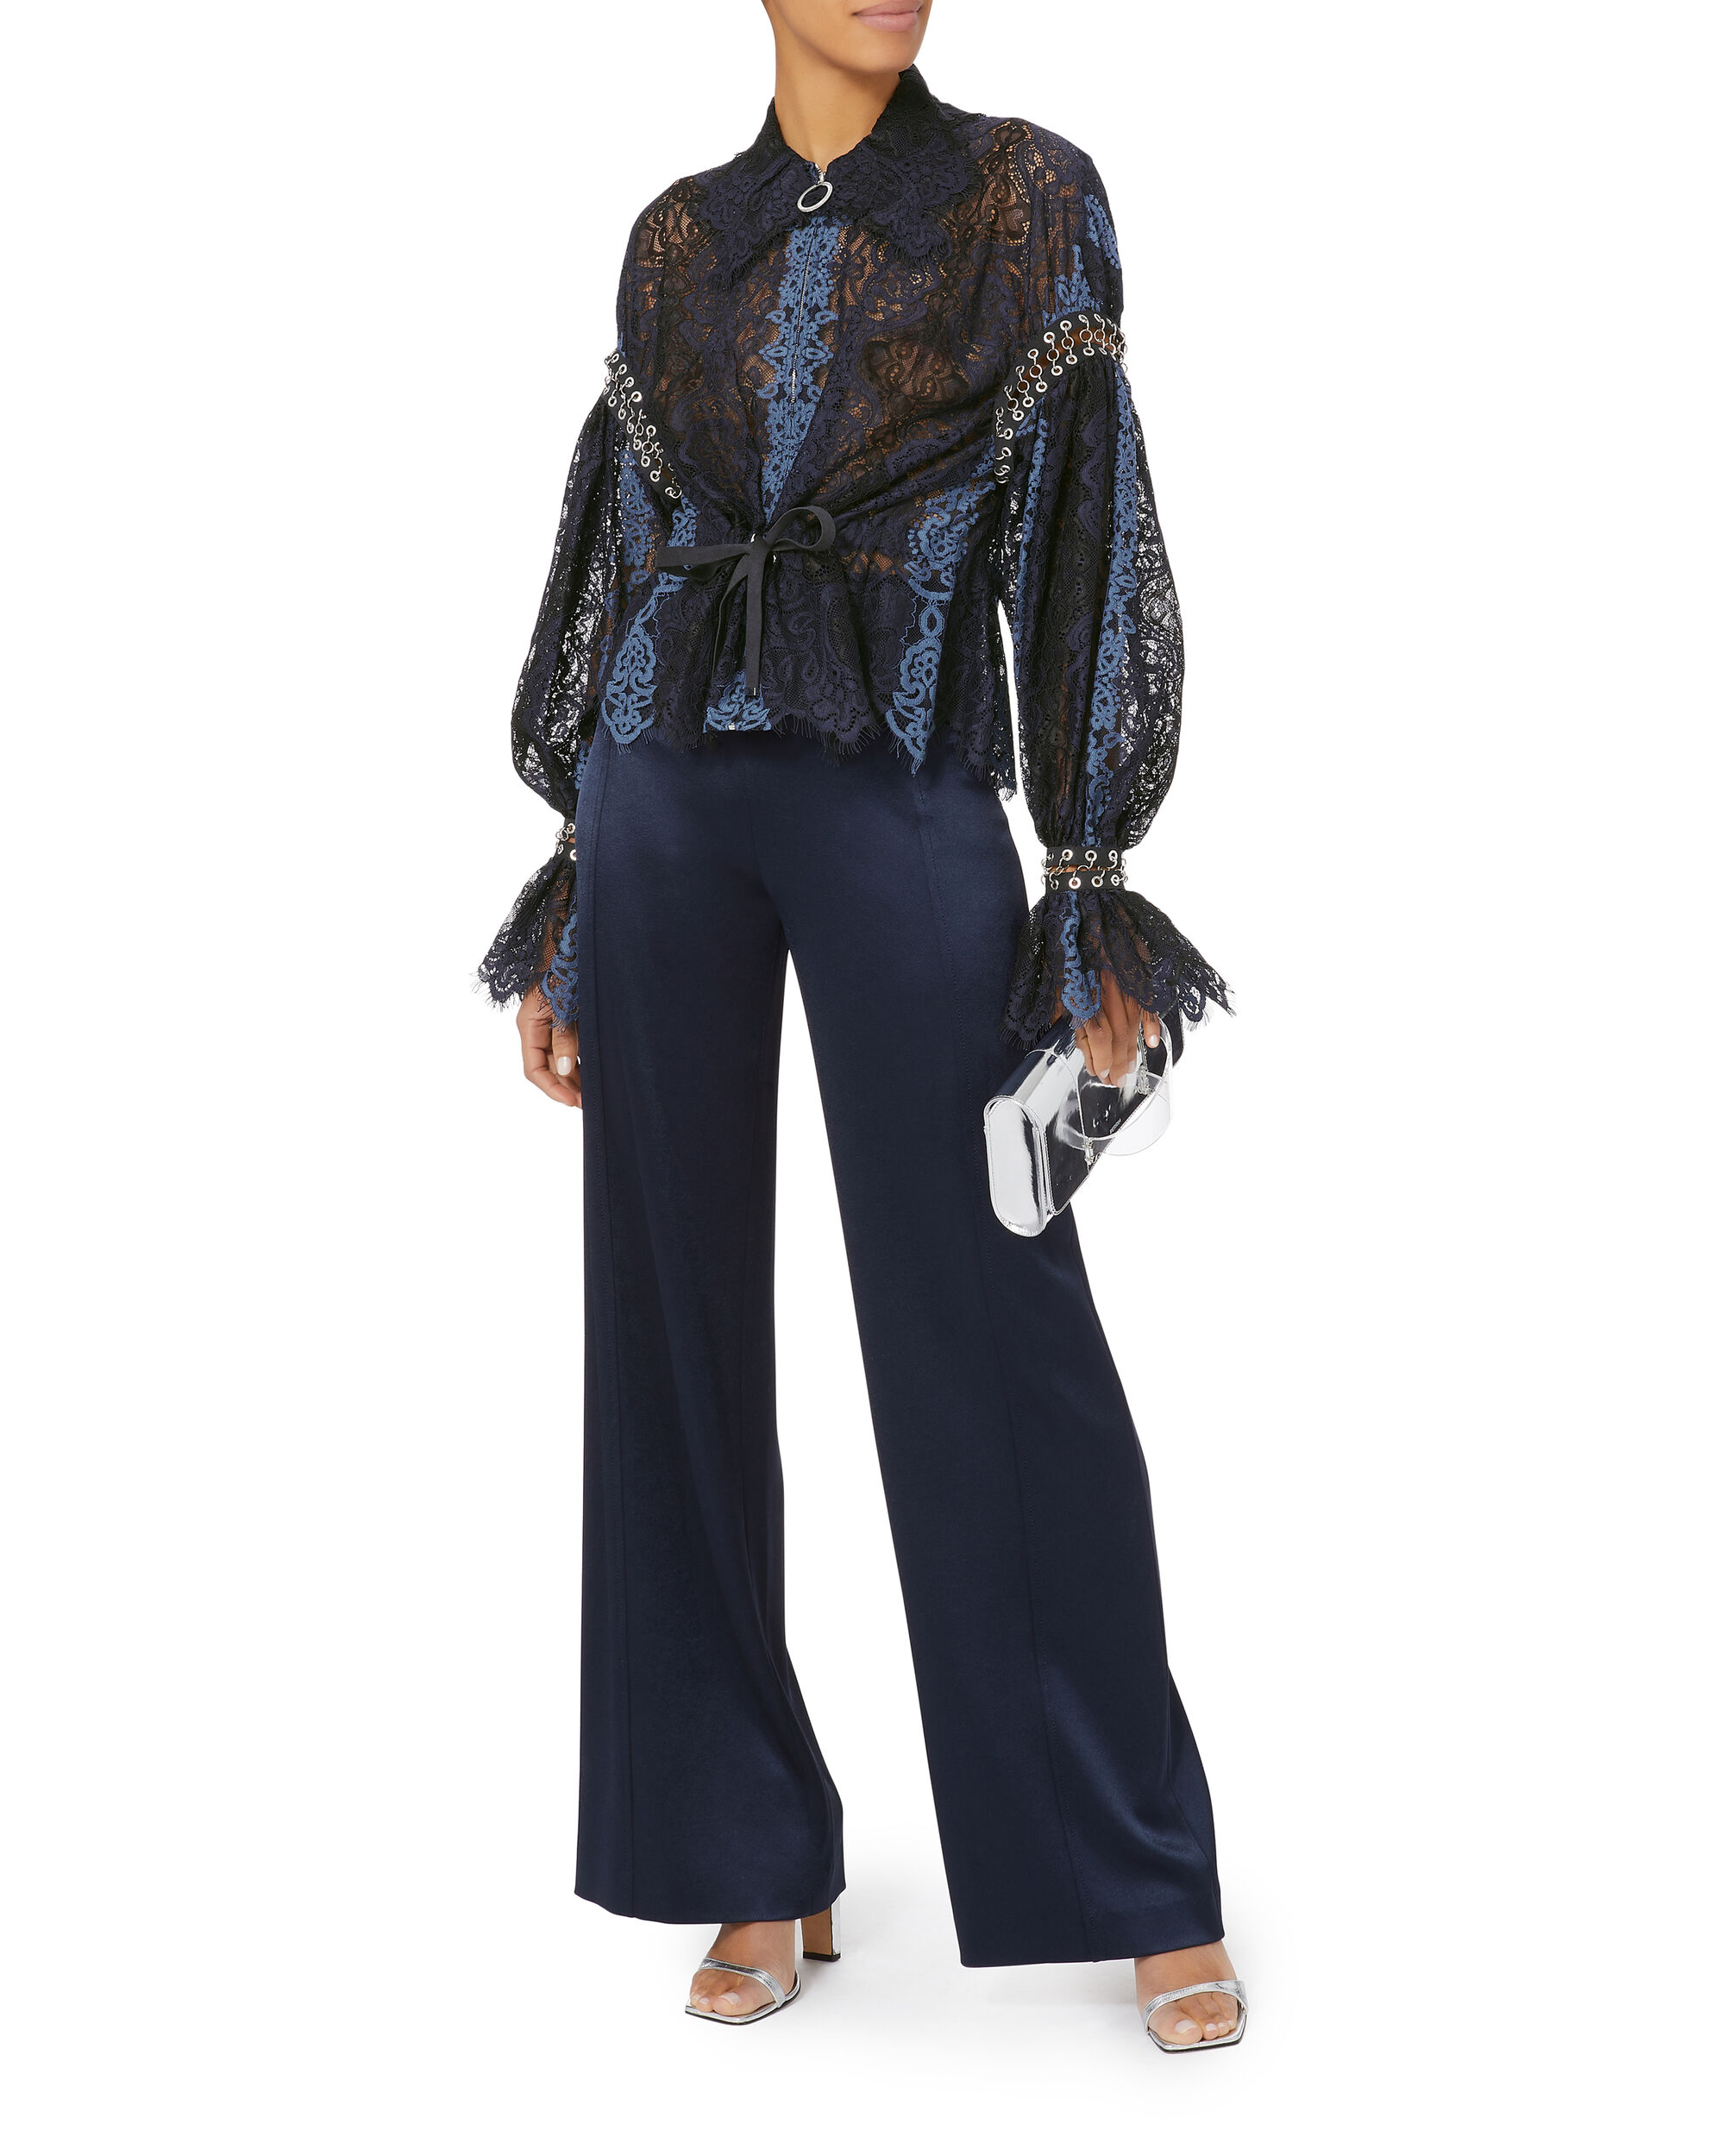 Grommet Lace Jacket, BLUE-DRK, hi-res